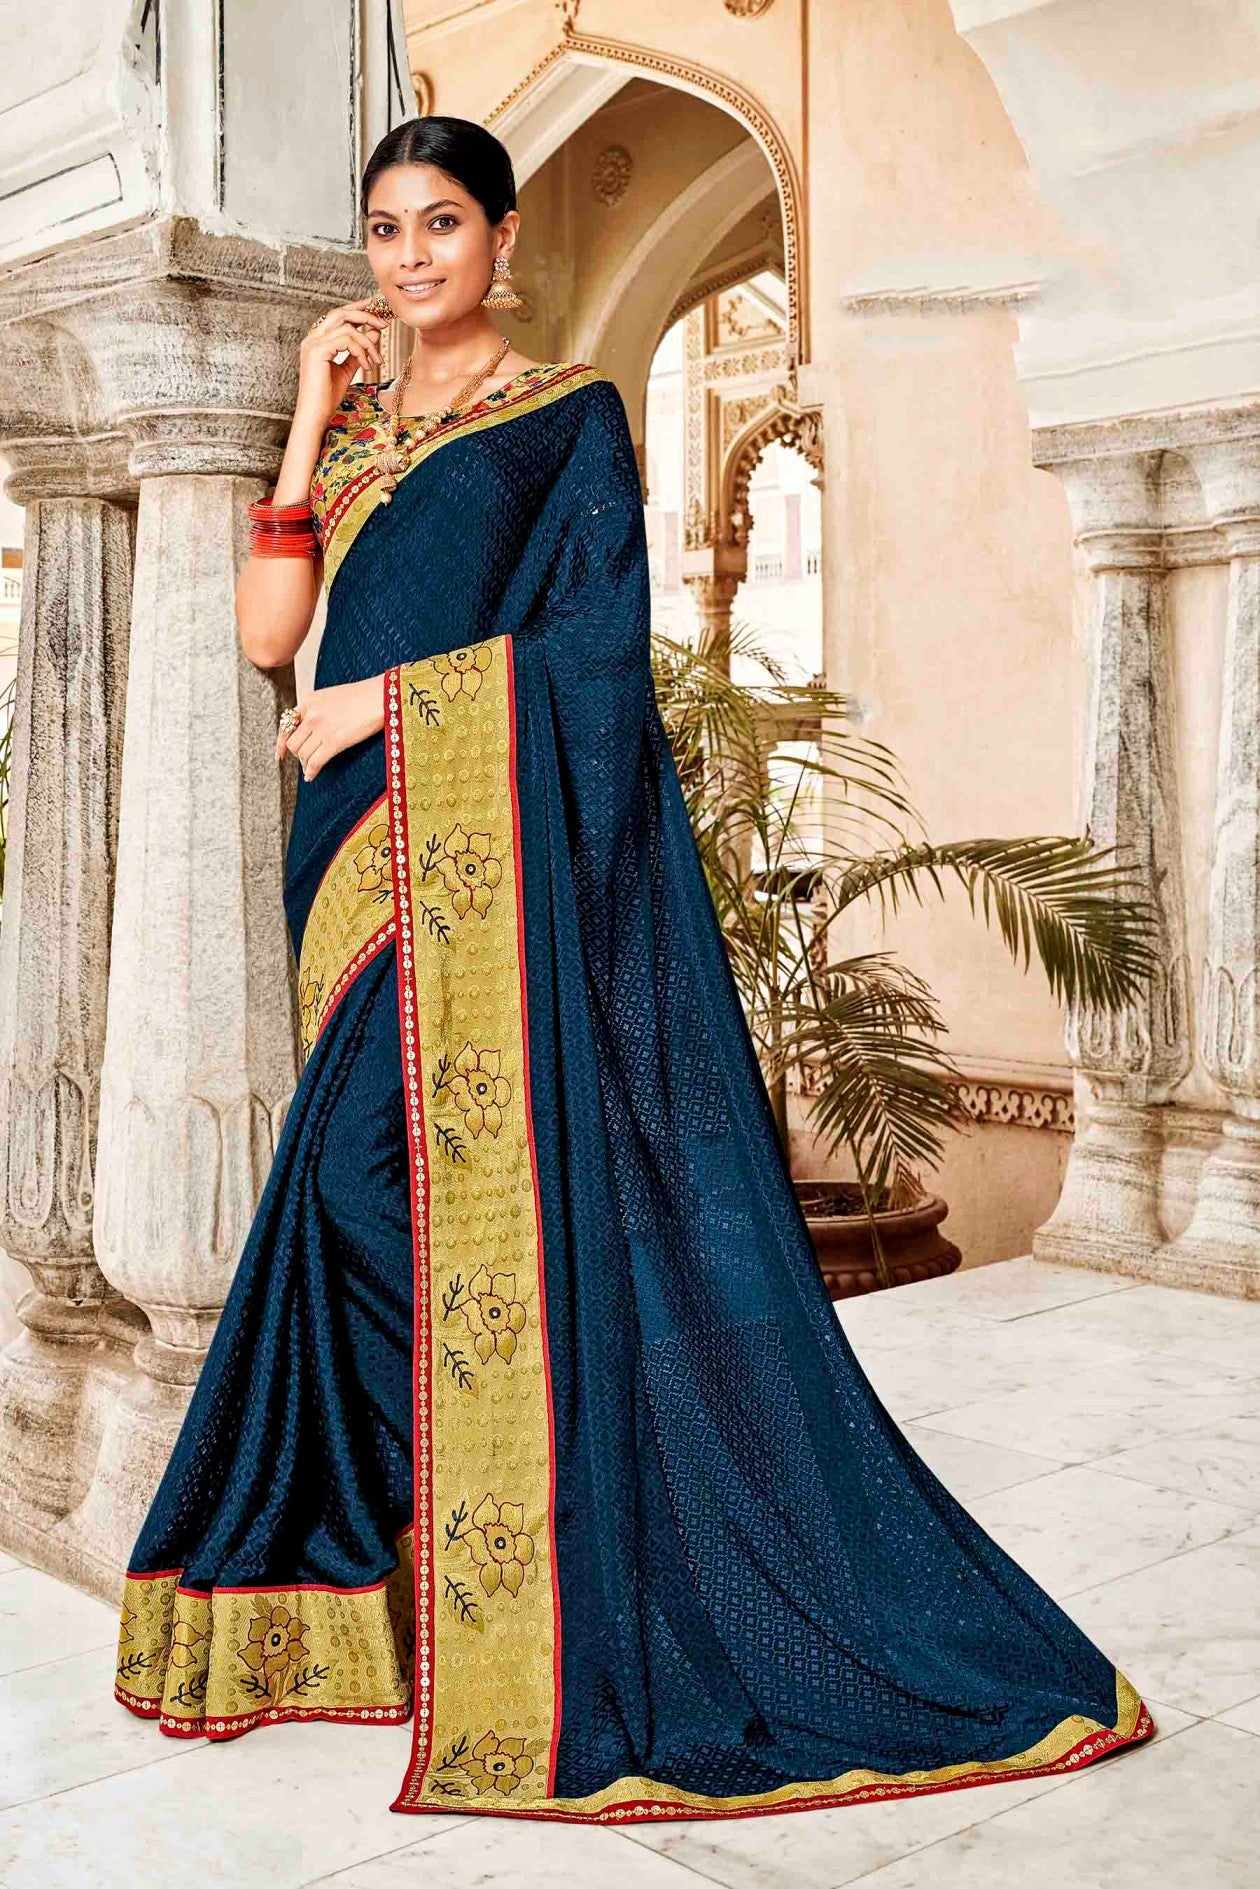 Laxmipati Dhanak Printed Chiffon  Saree (Navy Blue) By Indians Boutique